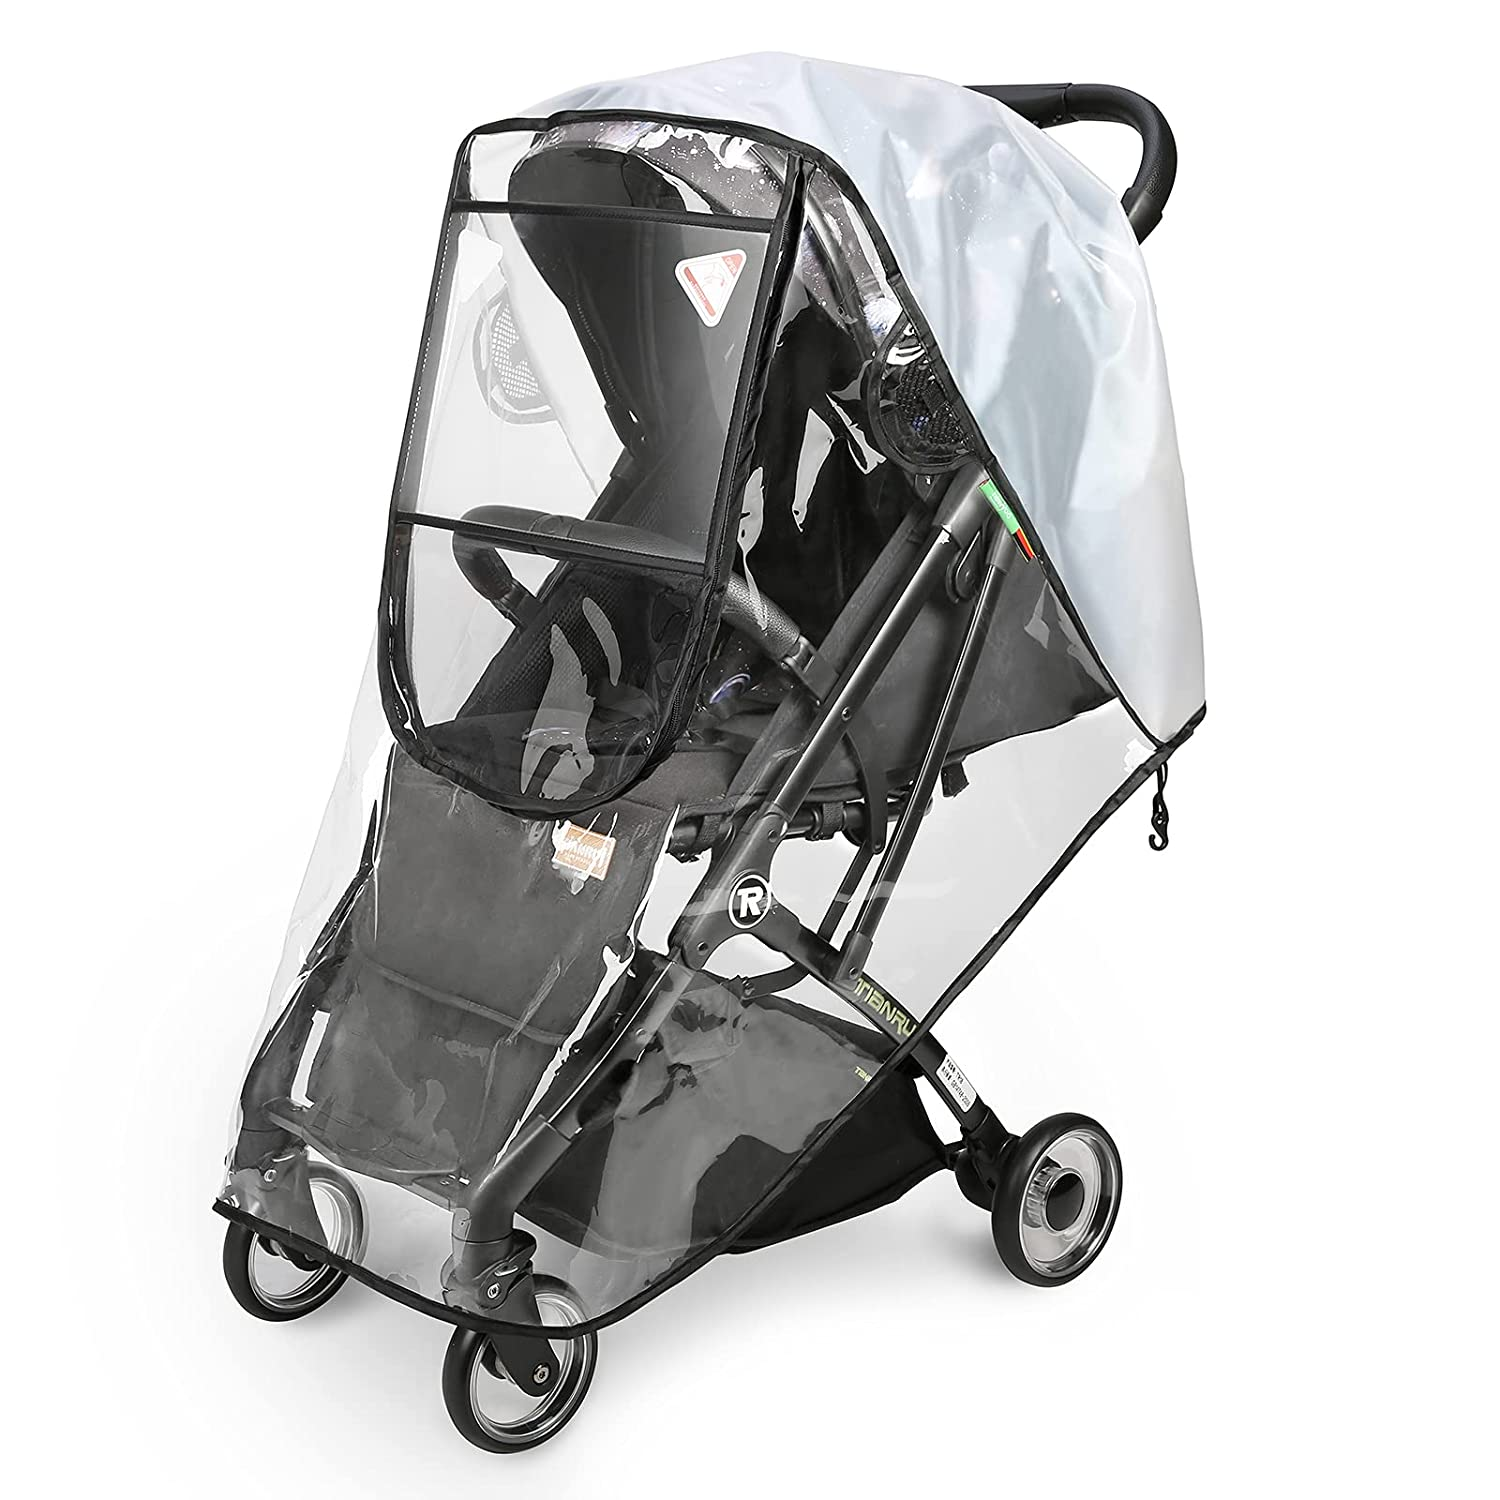 newyoo Plastic Stroller Rain Cover Universal Weather Shield Waterproof Windproof Stroller Accessory with Ventilation for All-Around Protection Food-Grade EVA Protect from Rain, Wind, Dust, Insects